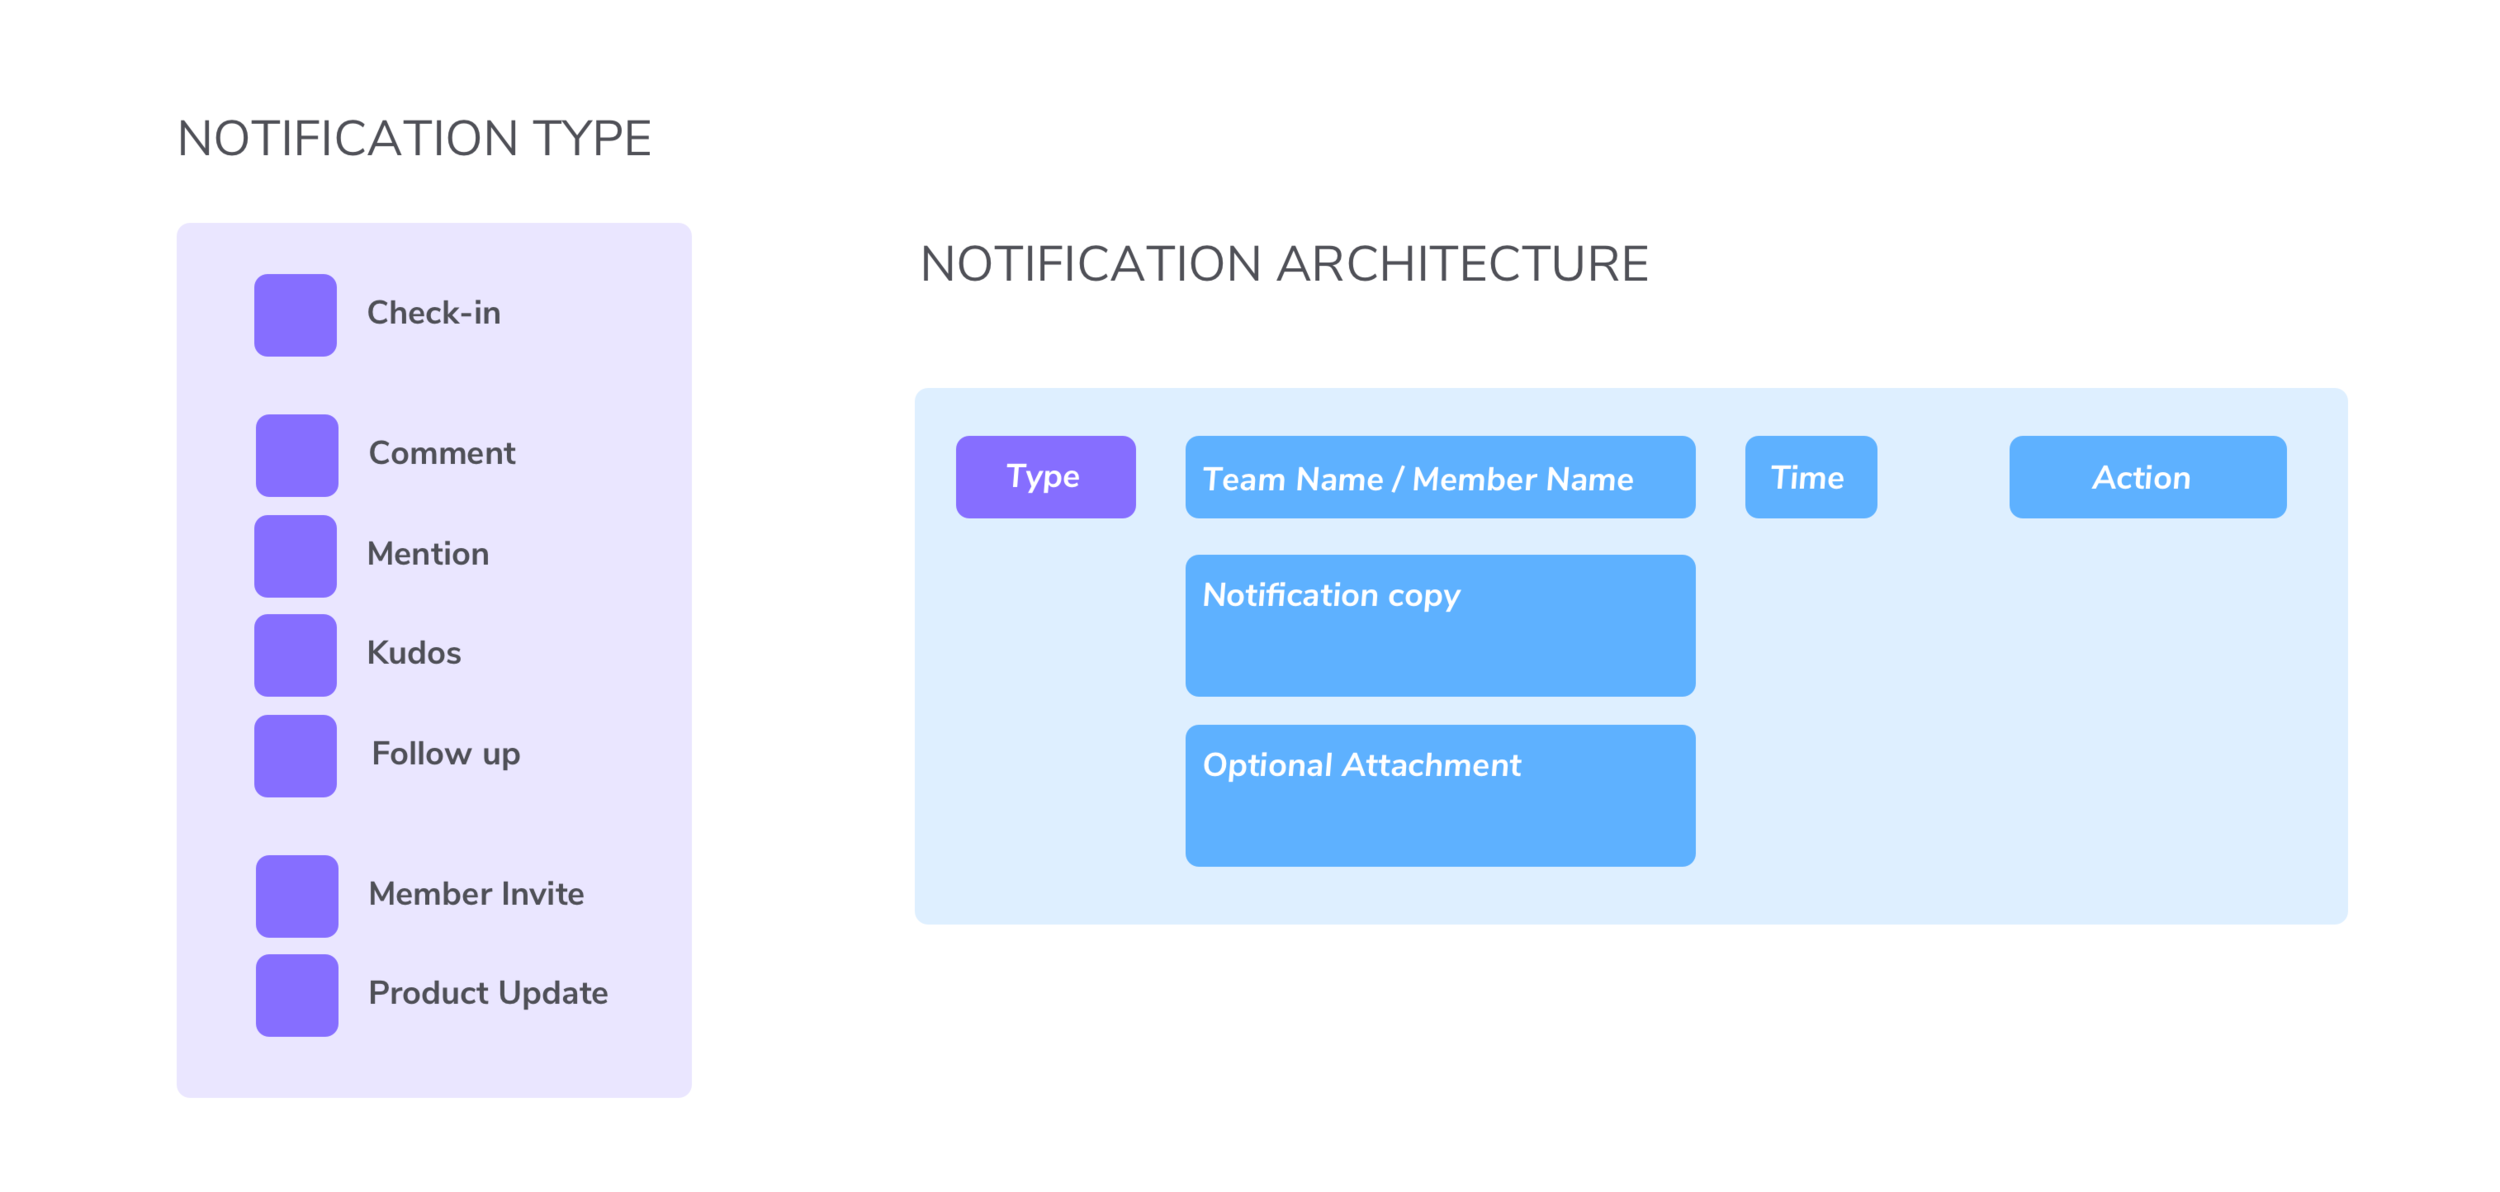 Notification types and architecture summarized.